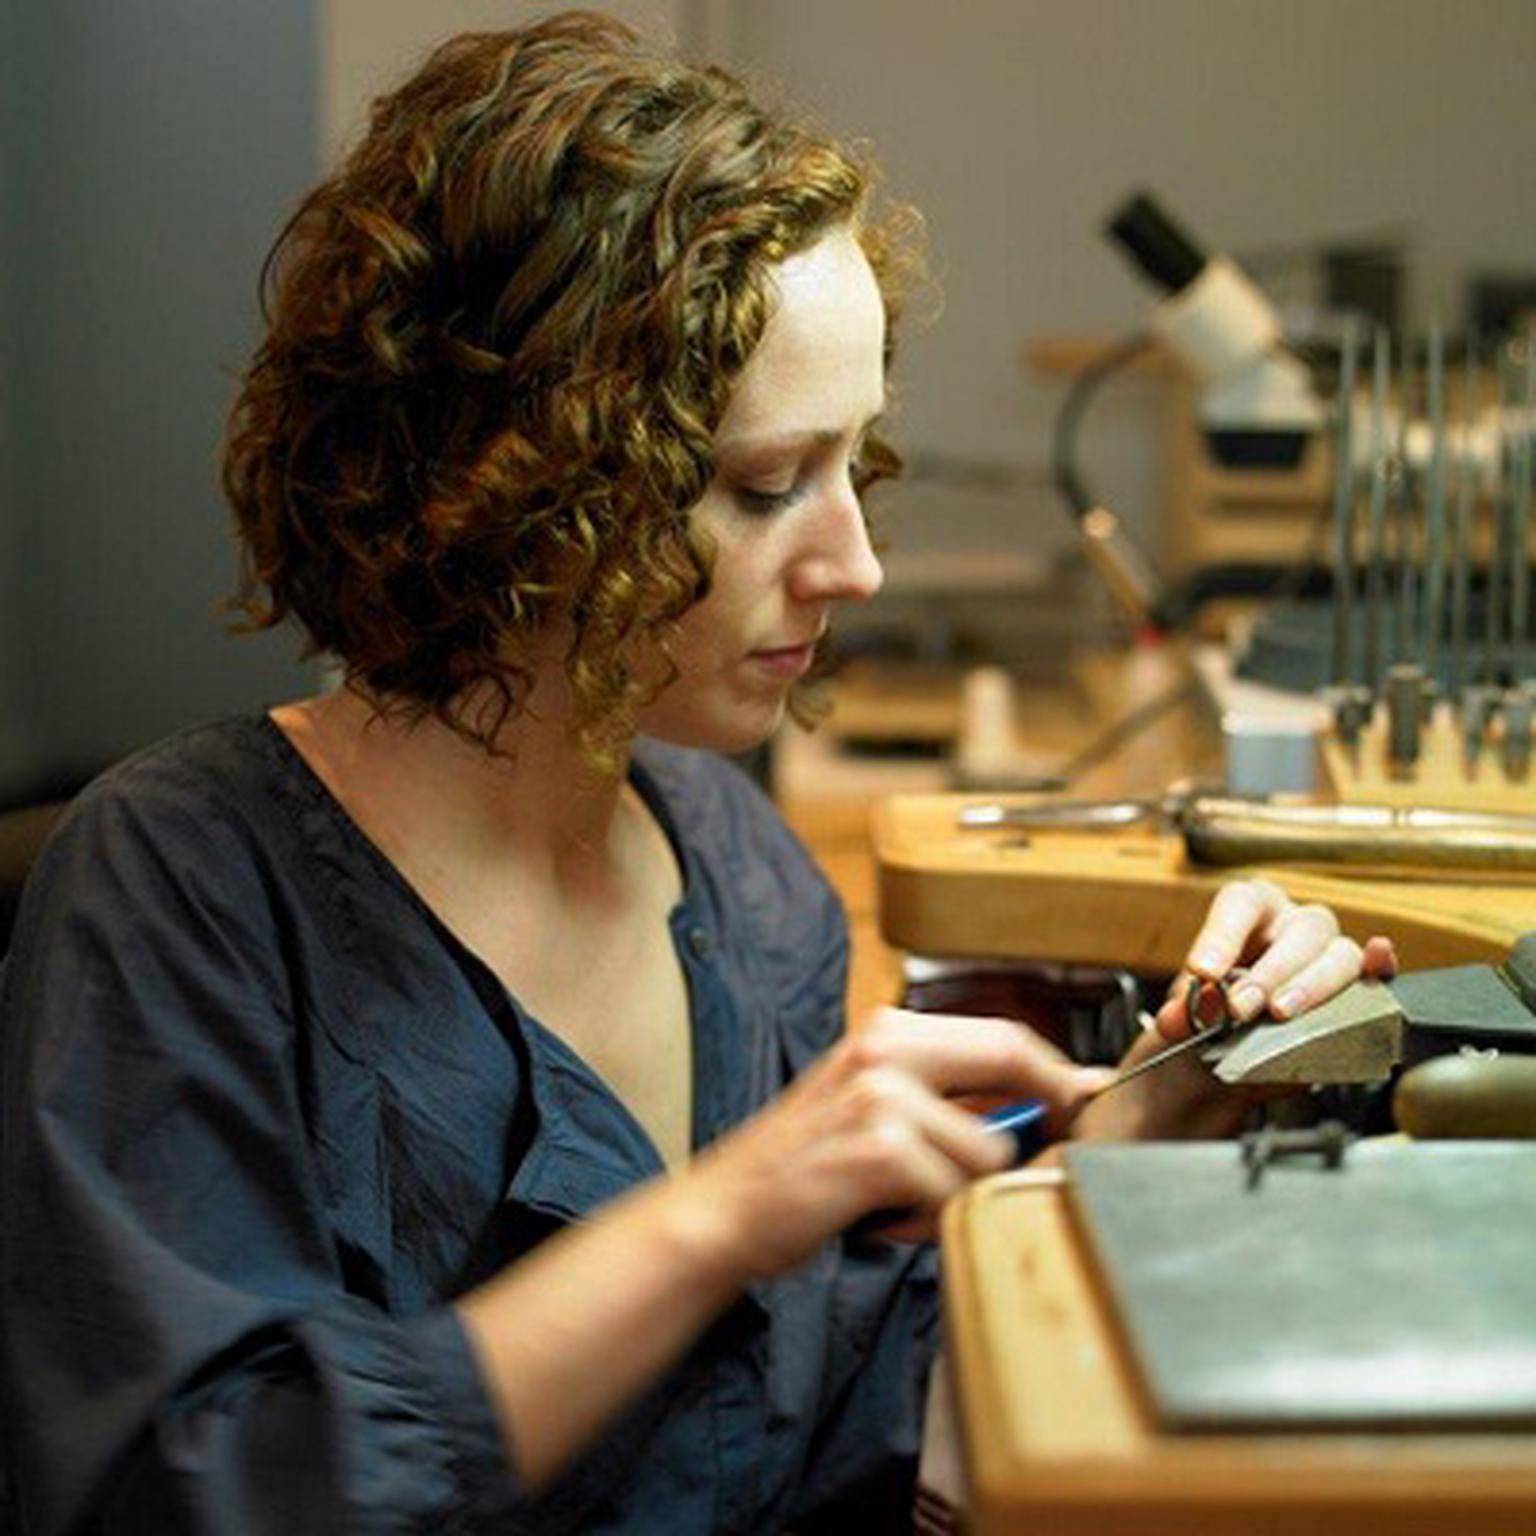 Irish goldsmith Jessica Poole at work in her central London studo.